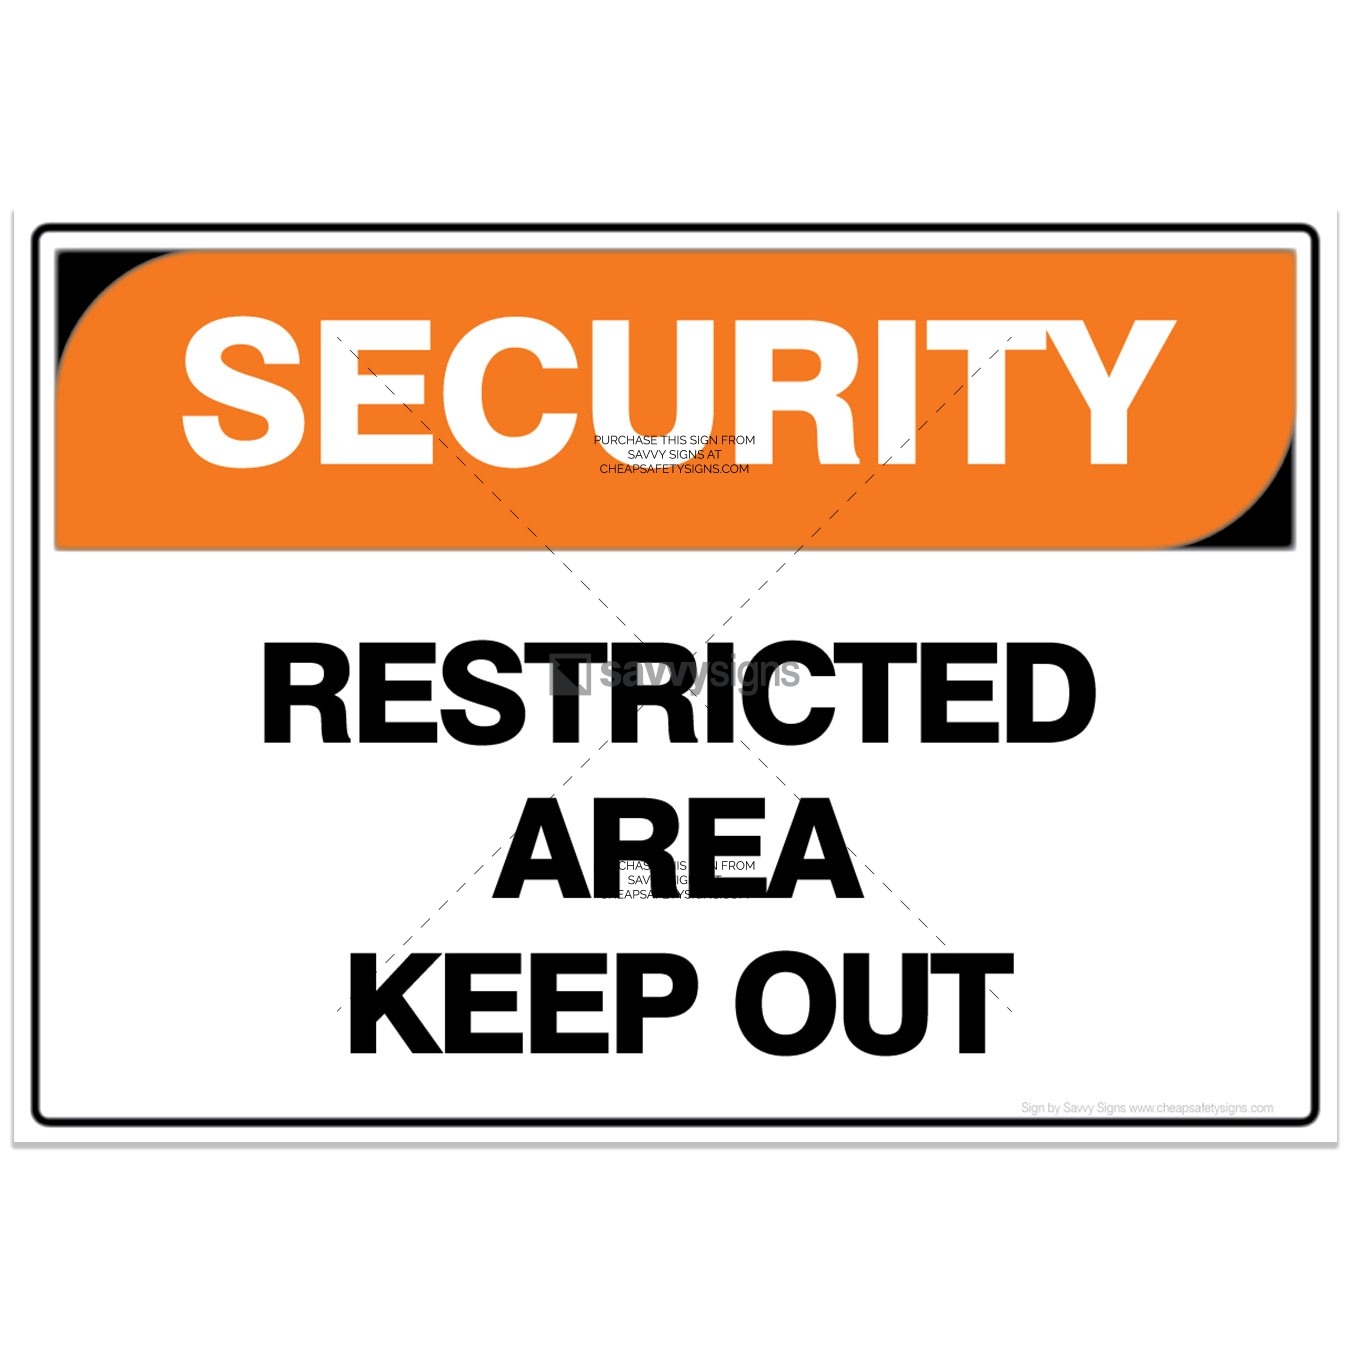 SSSEC3017-SECURITY-Workplace-Safety-Signs_Savvy-Signs_v3